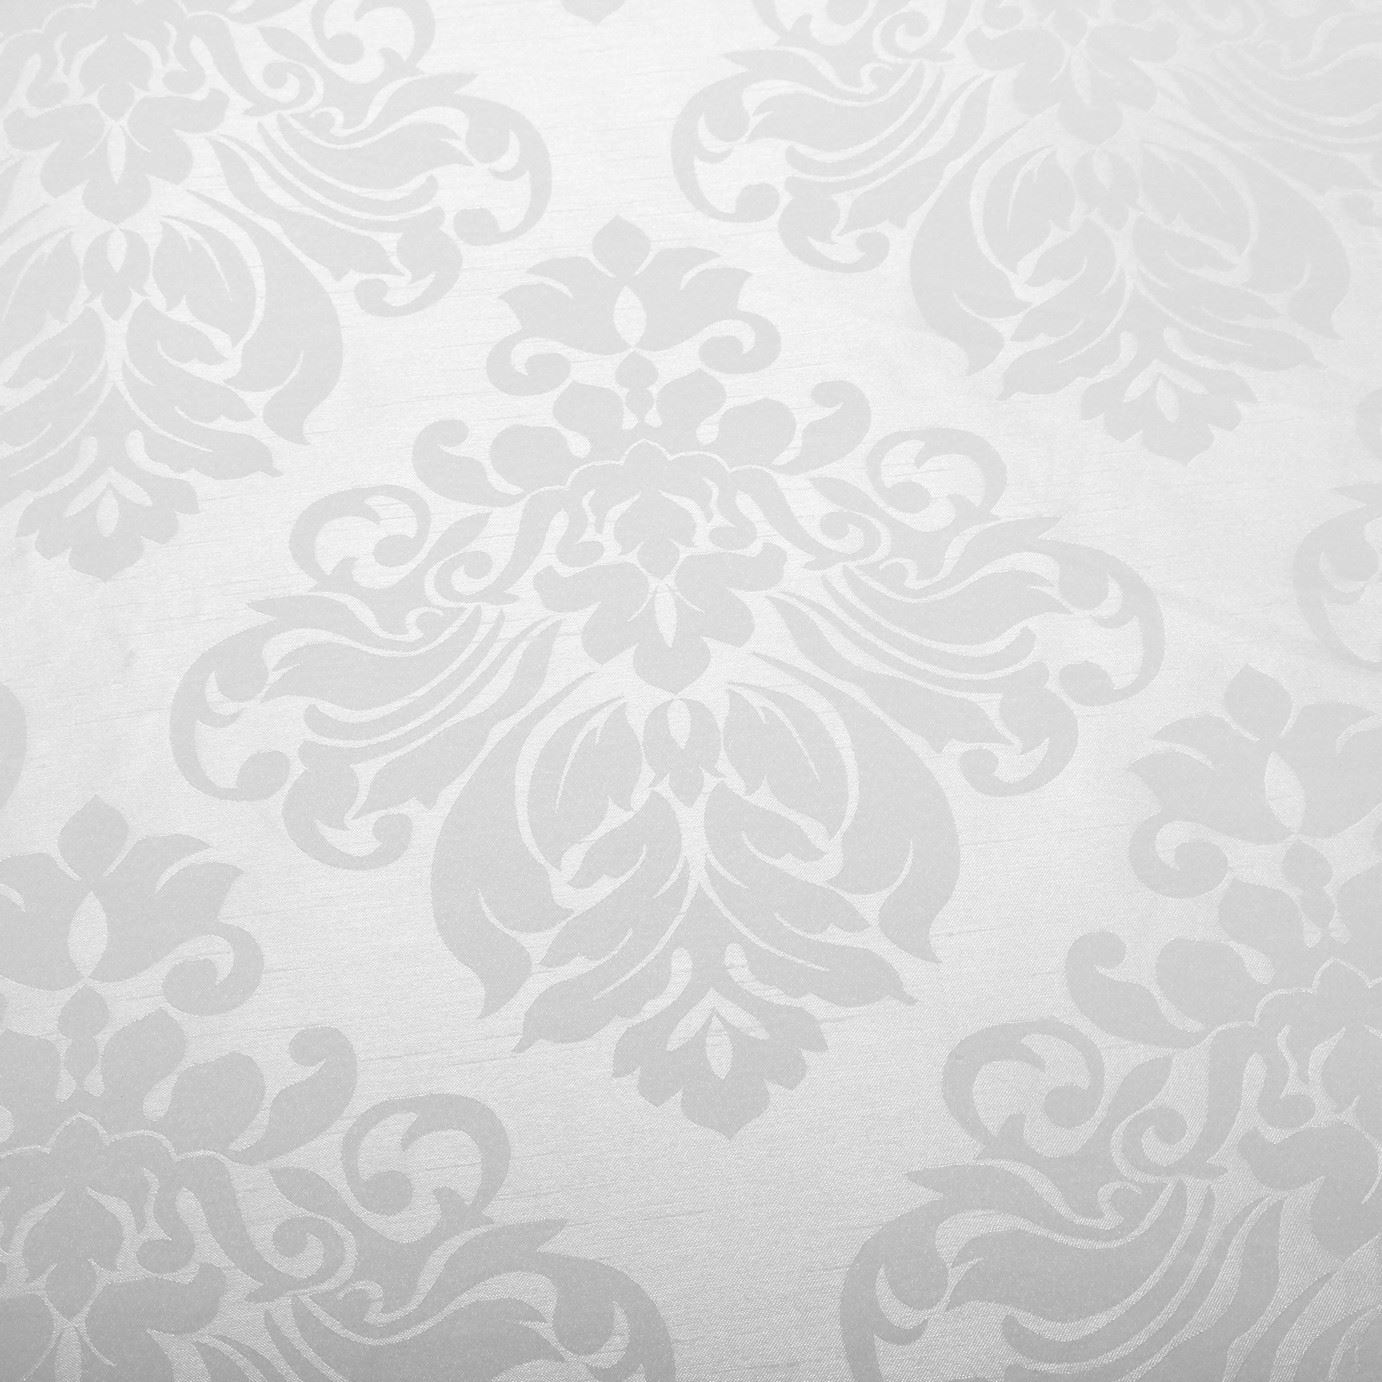 FLORAL-DAMASK-FAUX-SILK-JACQUARD-CURTAIN-UPHOLSTERY-FABRIC-MATERIAL-12-COLOURS thumbnail 39